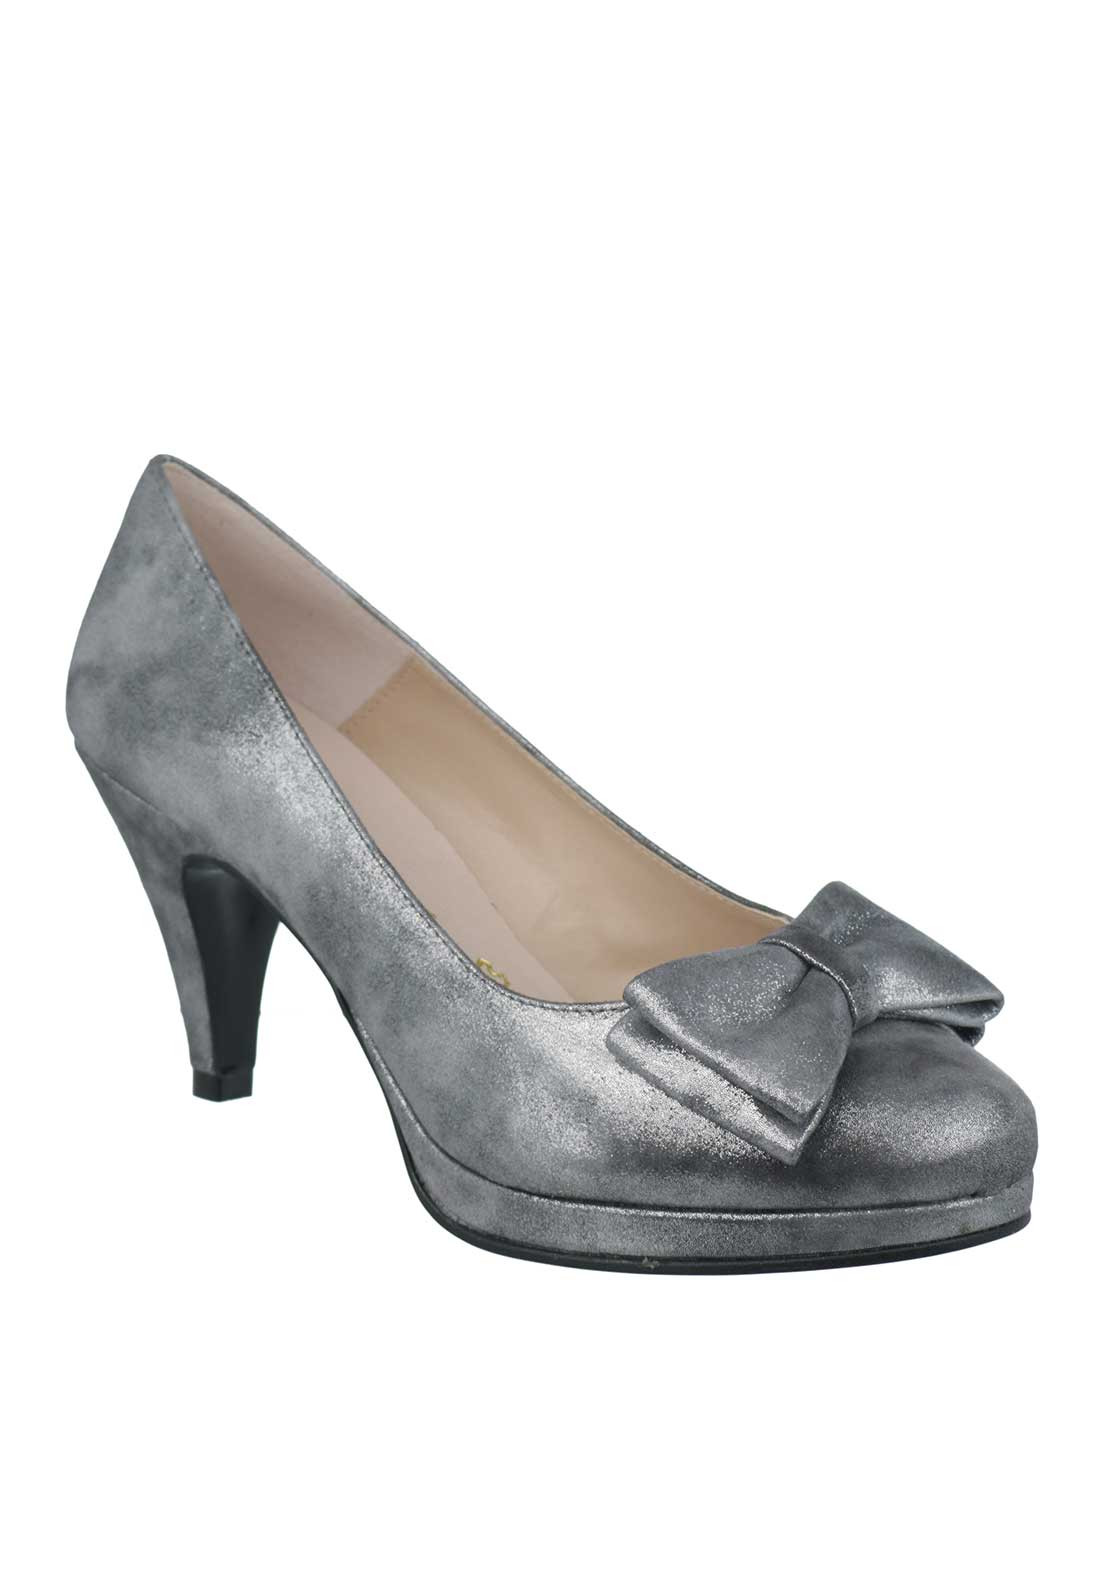 Ana Roman Suede Shimmer Bow Heeled Court Shoes, Grey